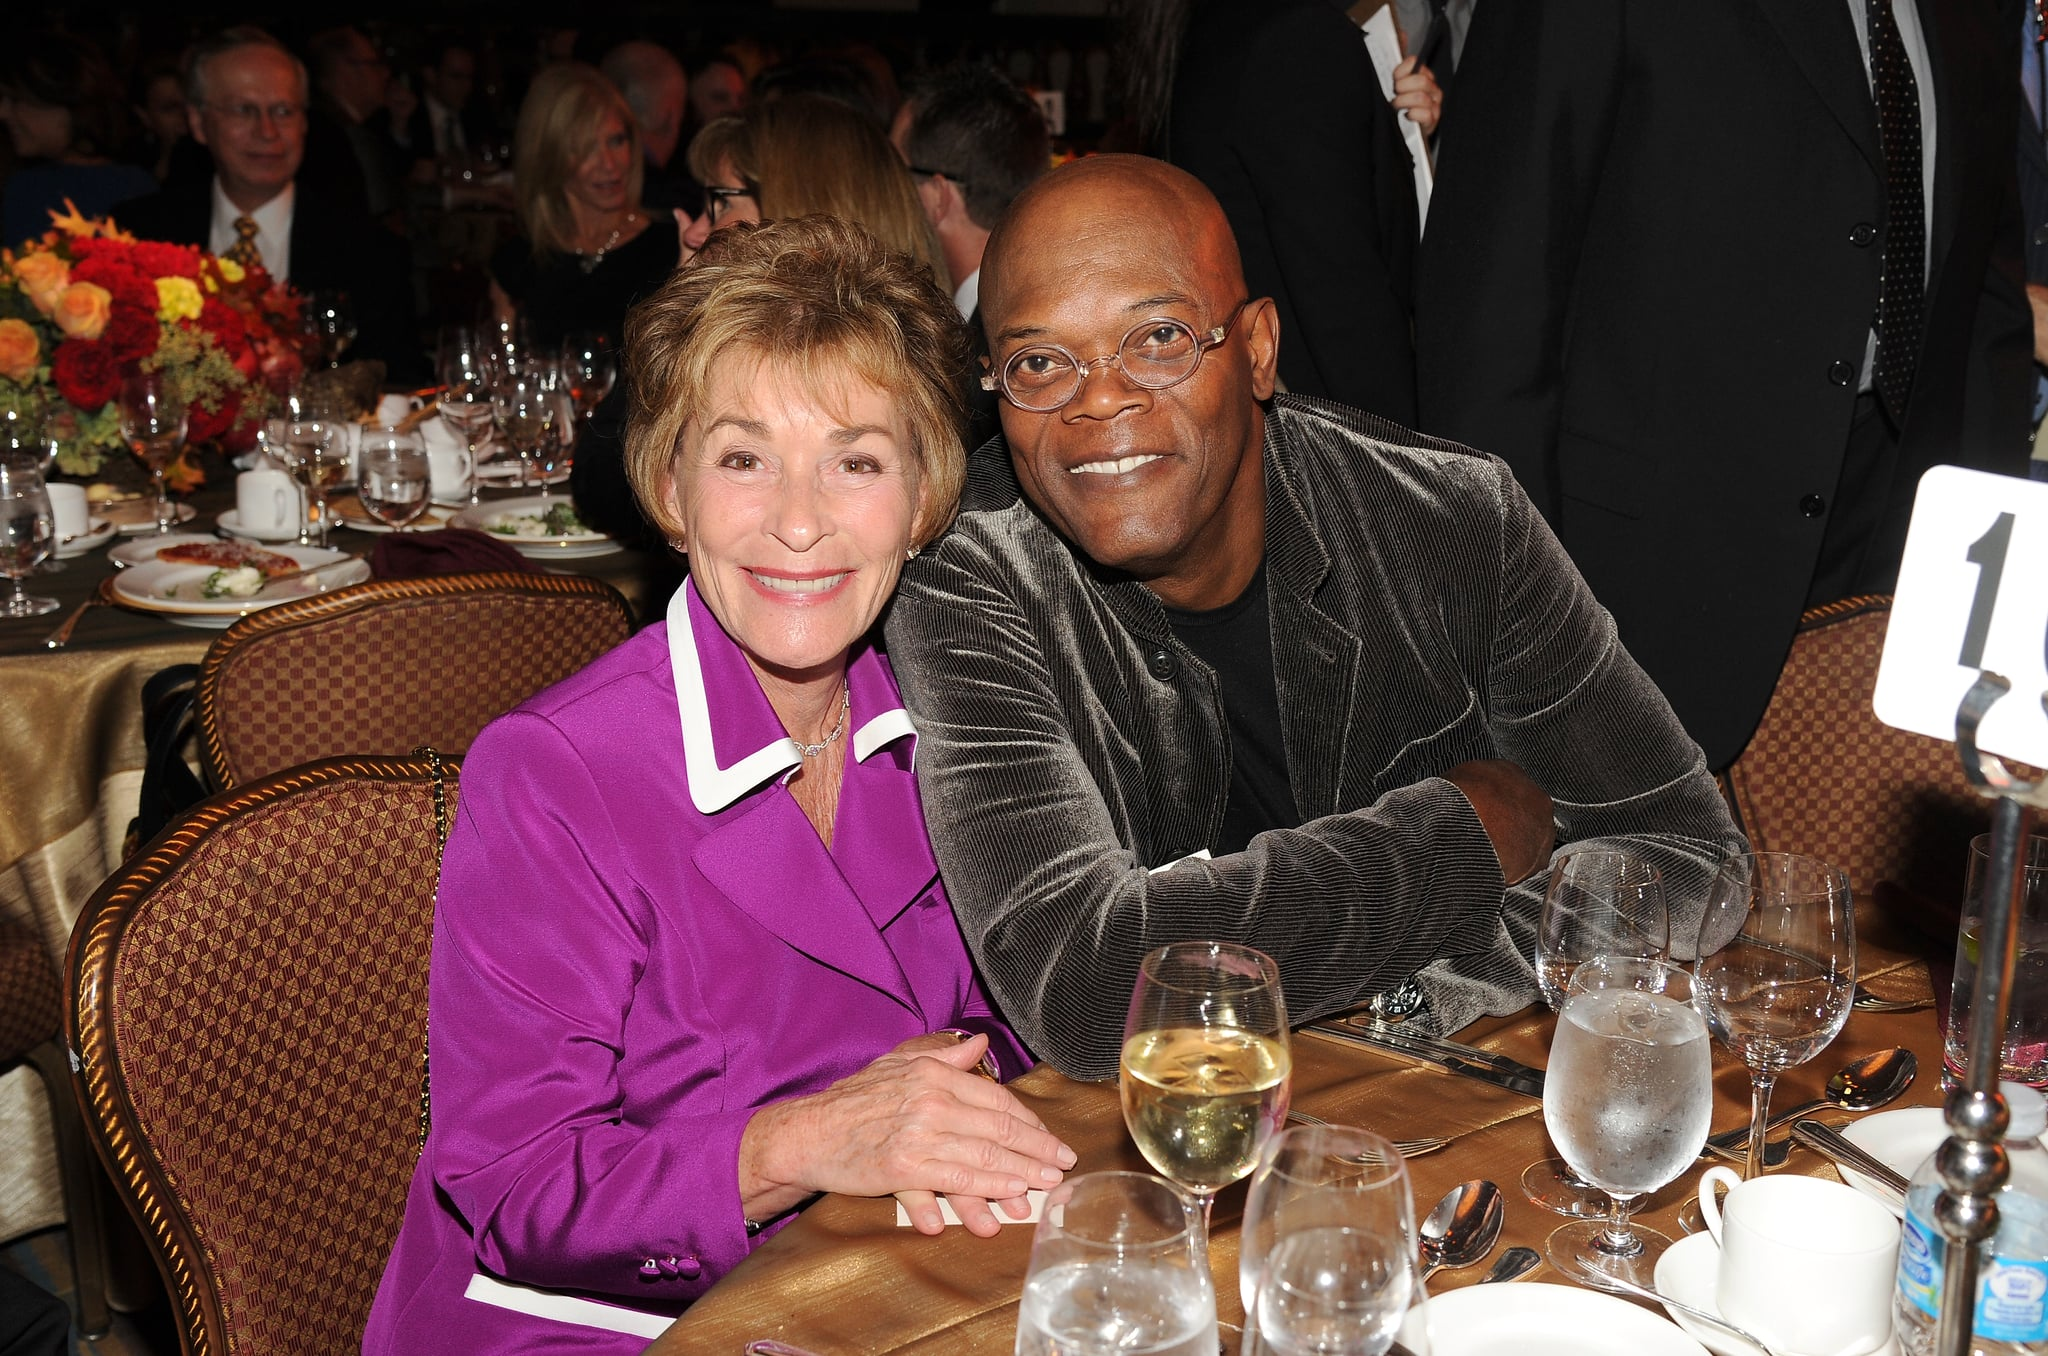 BEVERLY HILLS, CA - NOVEMBER 13:  Actors Judge Judy and Samuel L. Jackson attend the 55th Annual Women's Guild Cedars-Sinai Gala  held on November 13, 2012 in Beverly Hills, California.  (Photo by Jason Merritt/Getty Images)